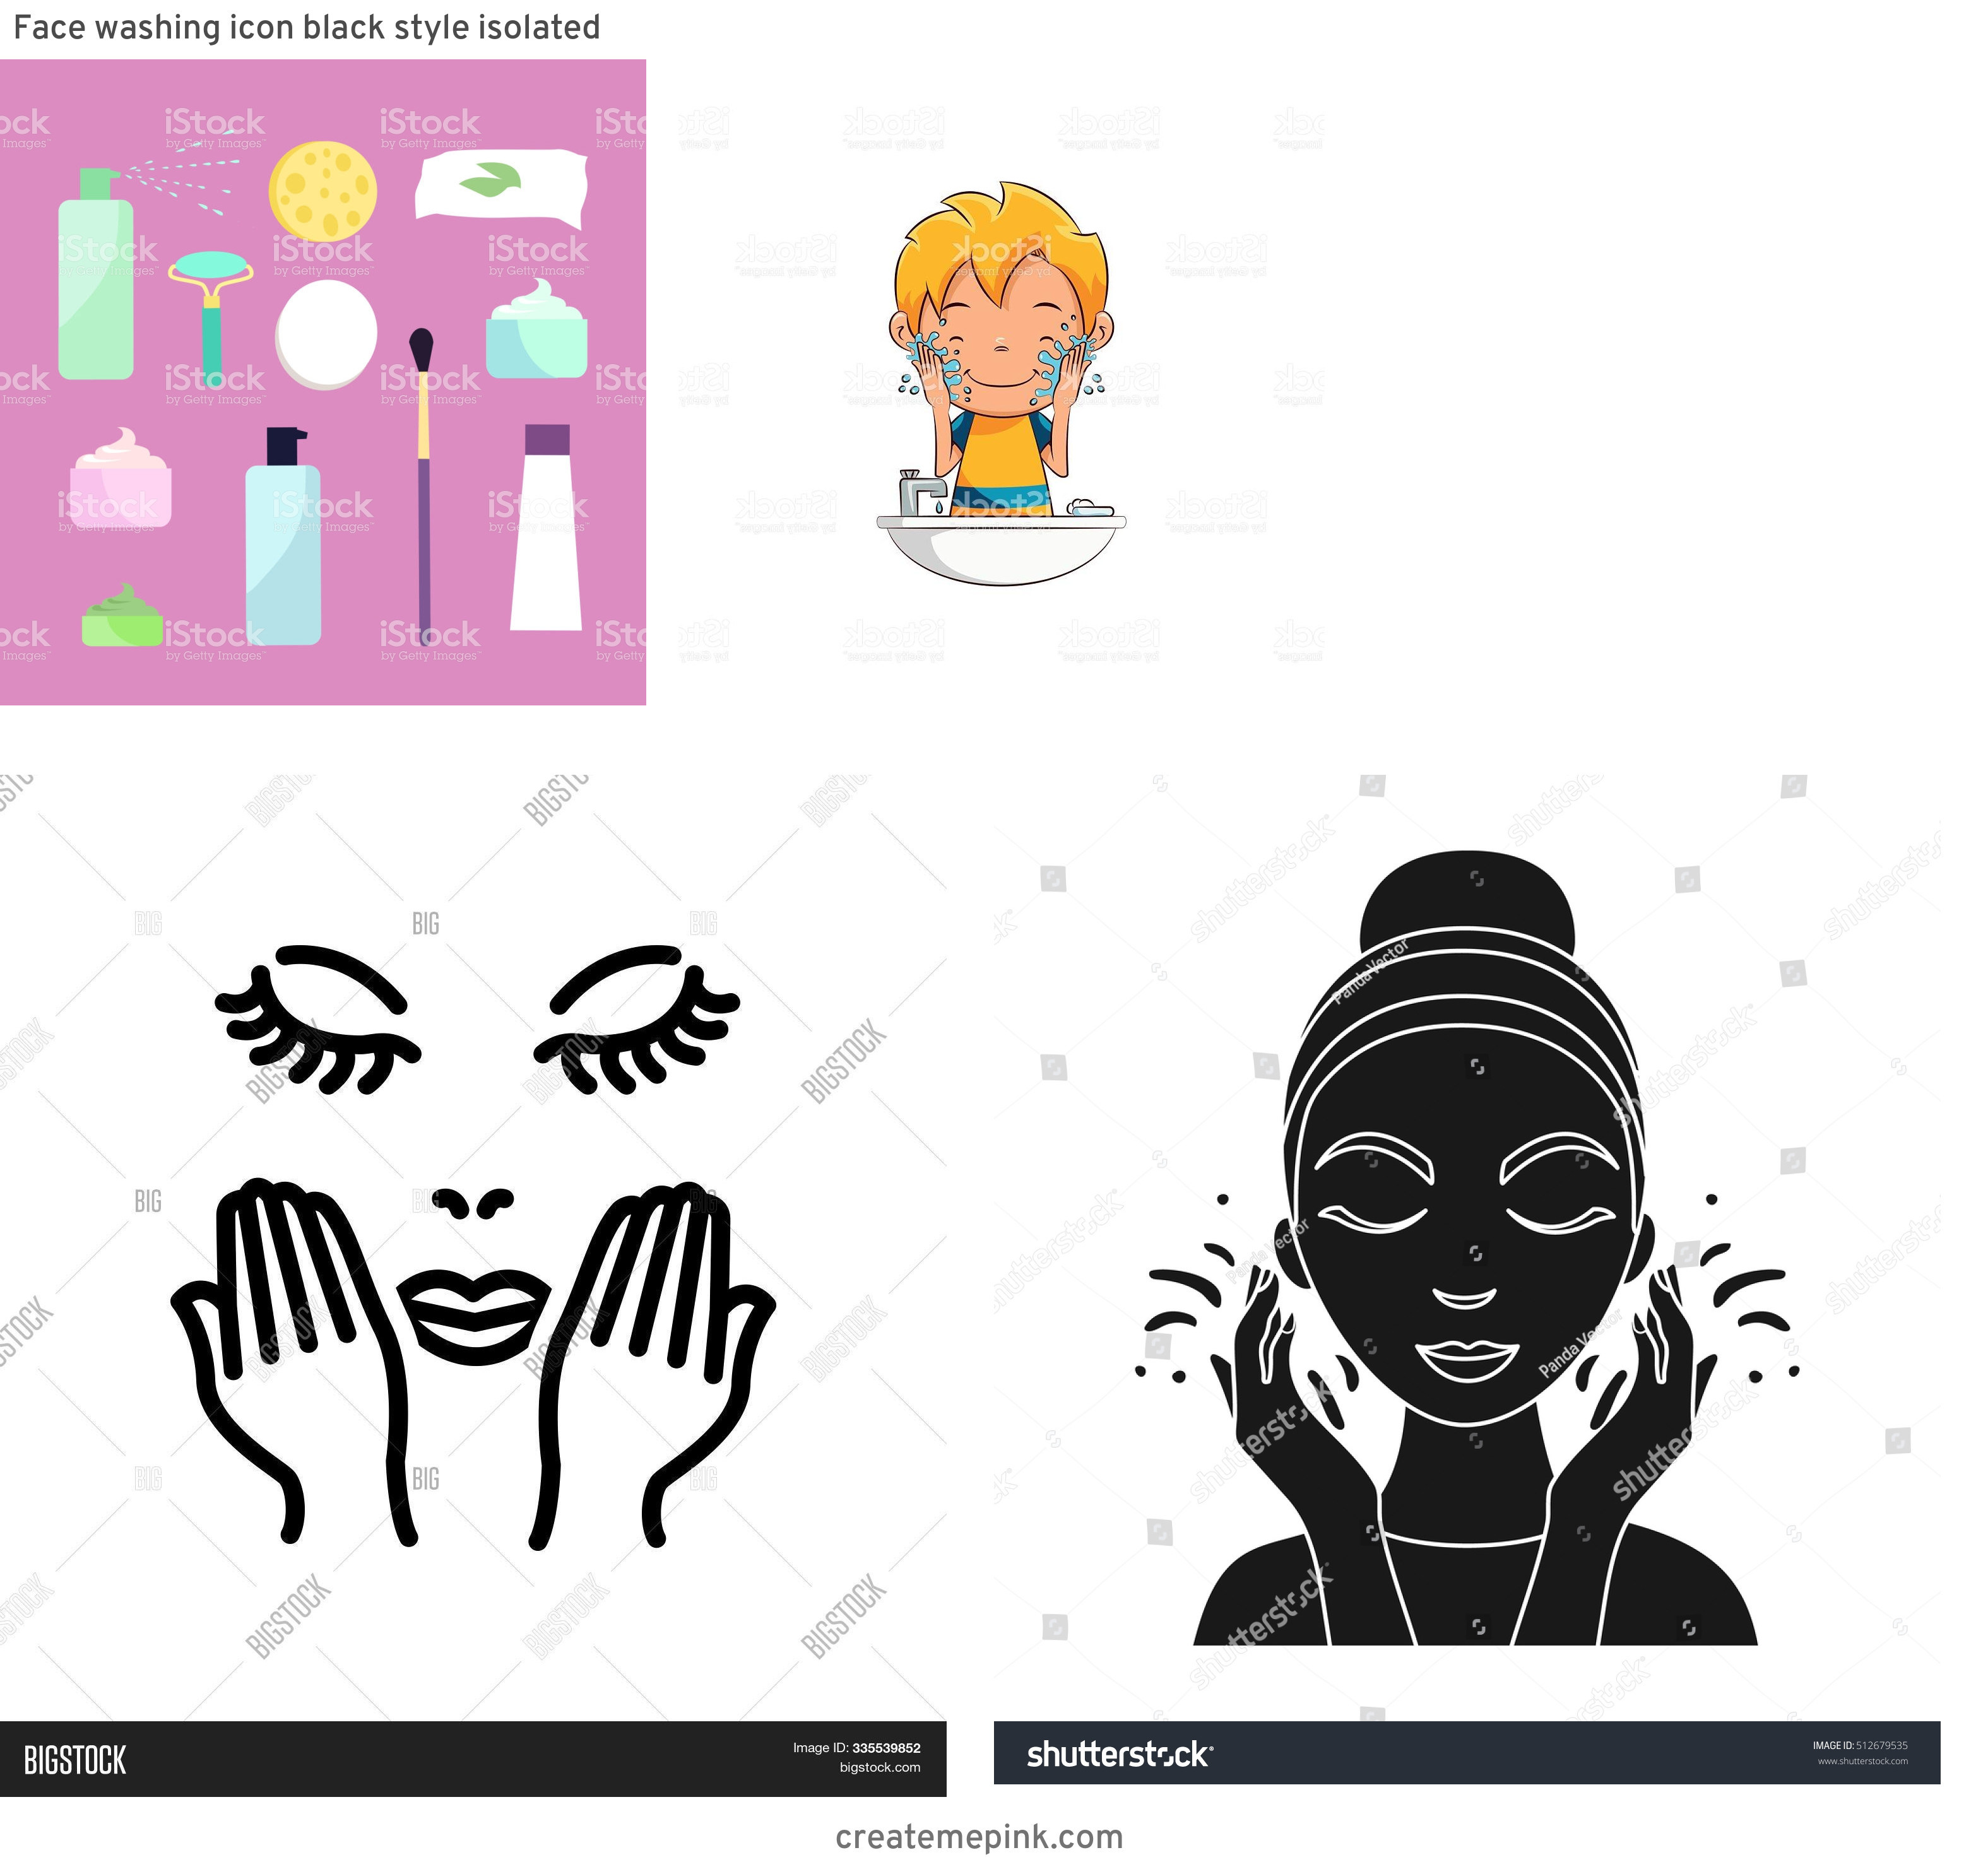 Vector Face Wash: Face Washing Icon Black Style Isolated